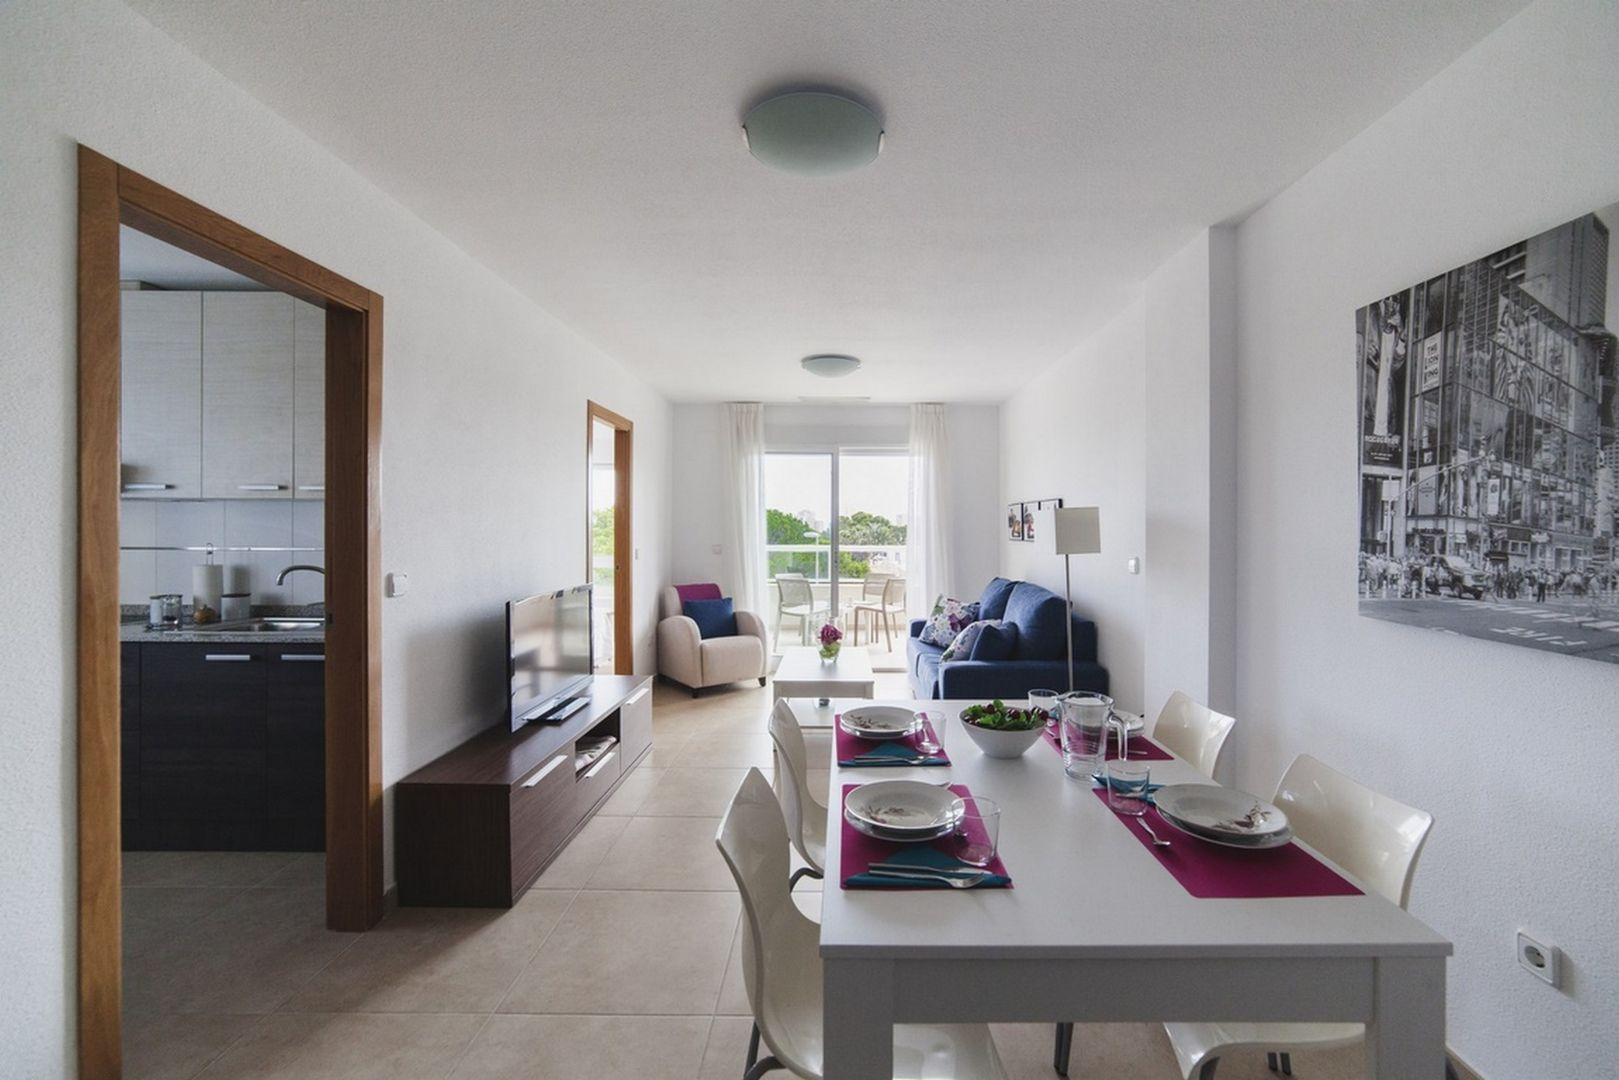 2 and 3 Bedrooms Apartments For Sale in Campoamor - Orihuela Costa